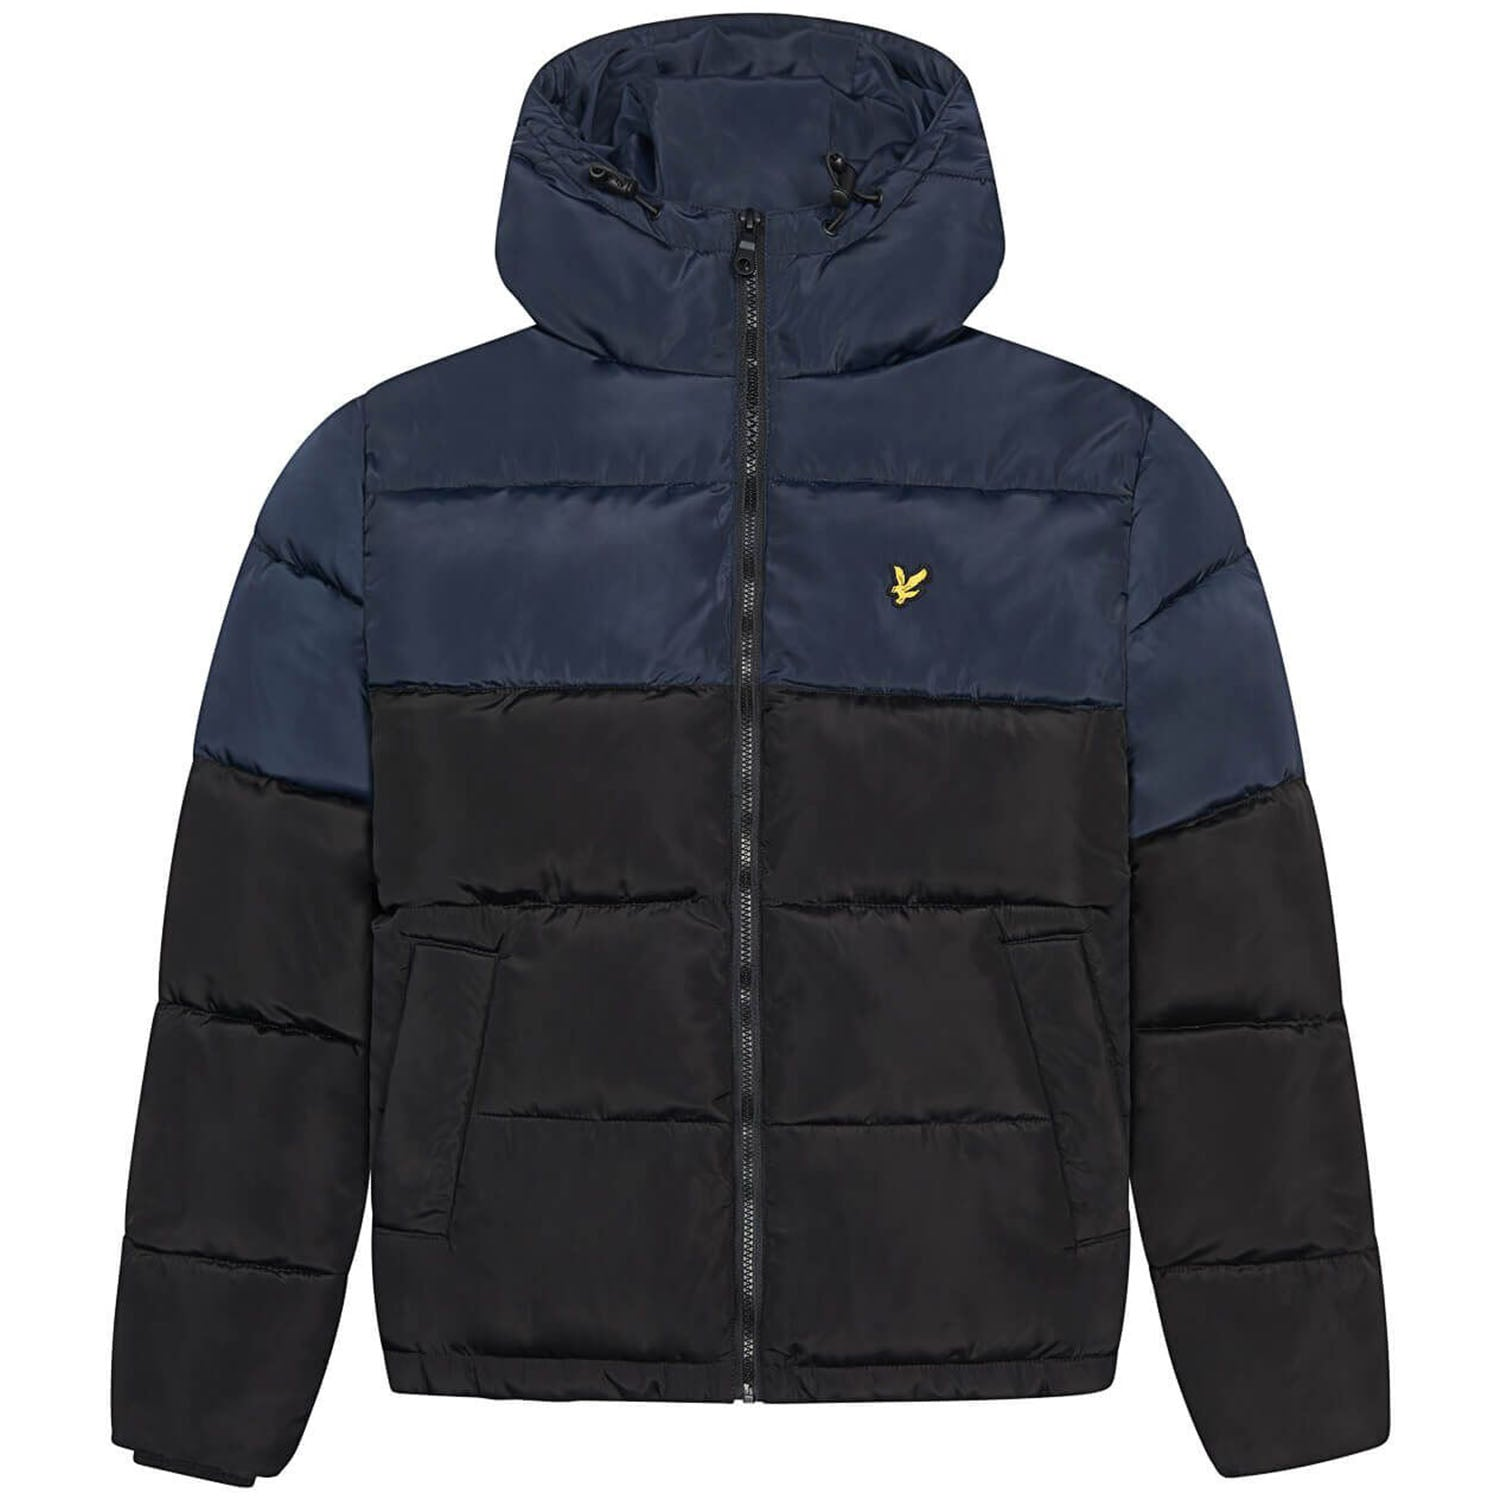 Lyle & Scott Colourblock Puffer Jacket